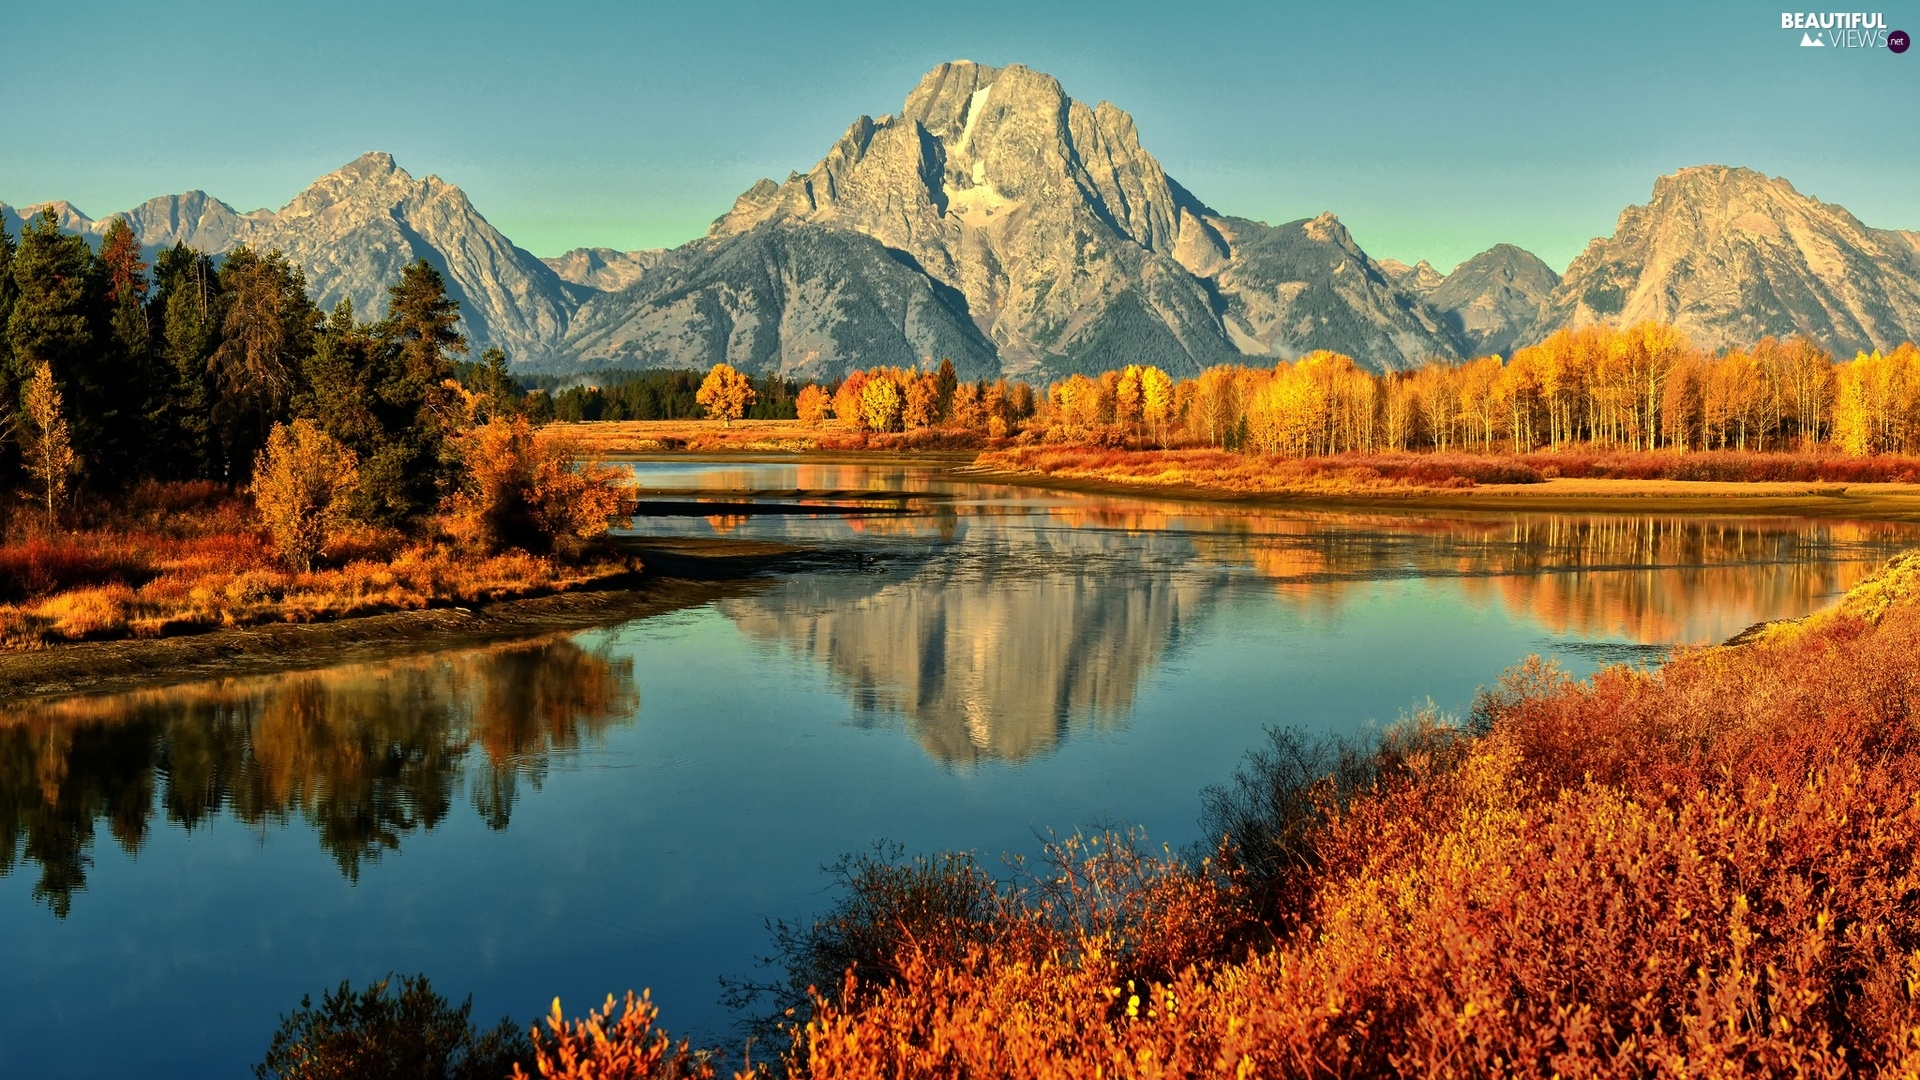 River, Mountains, autumn, forest